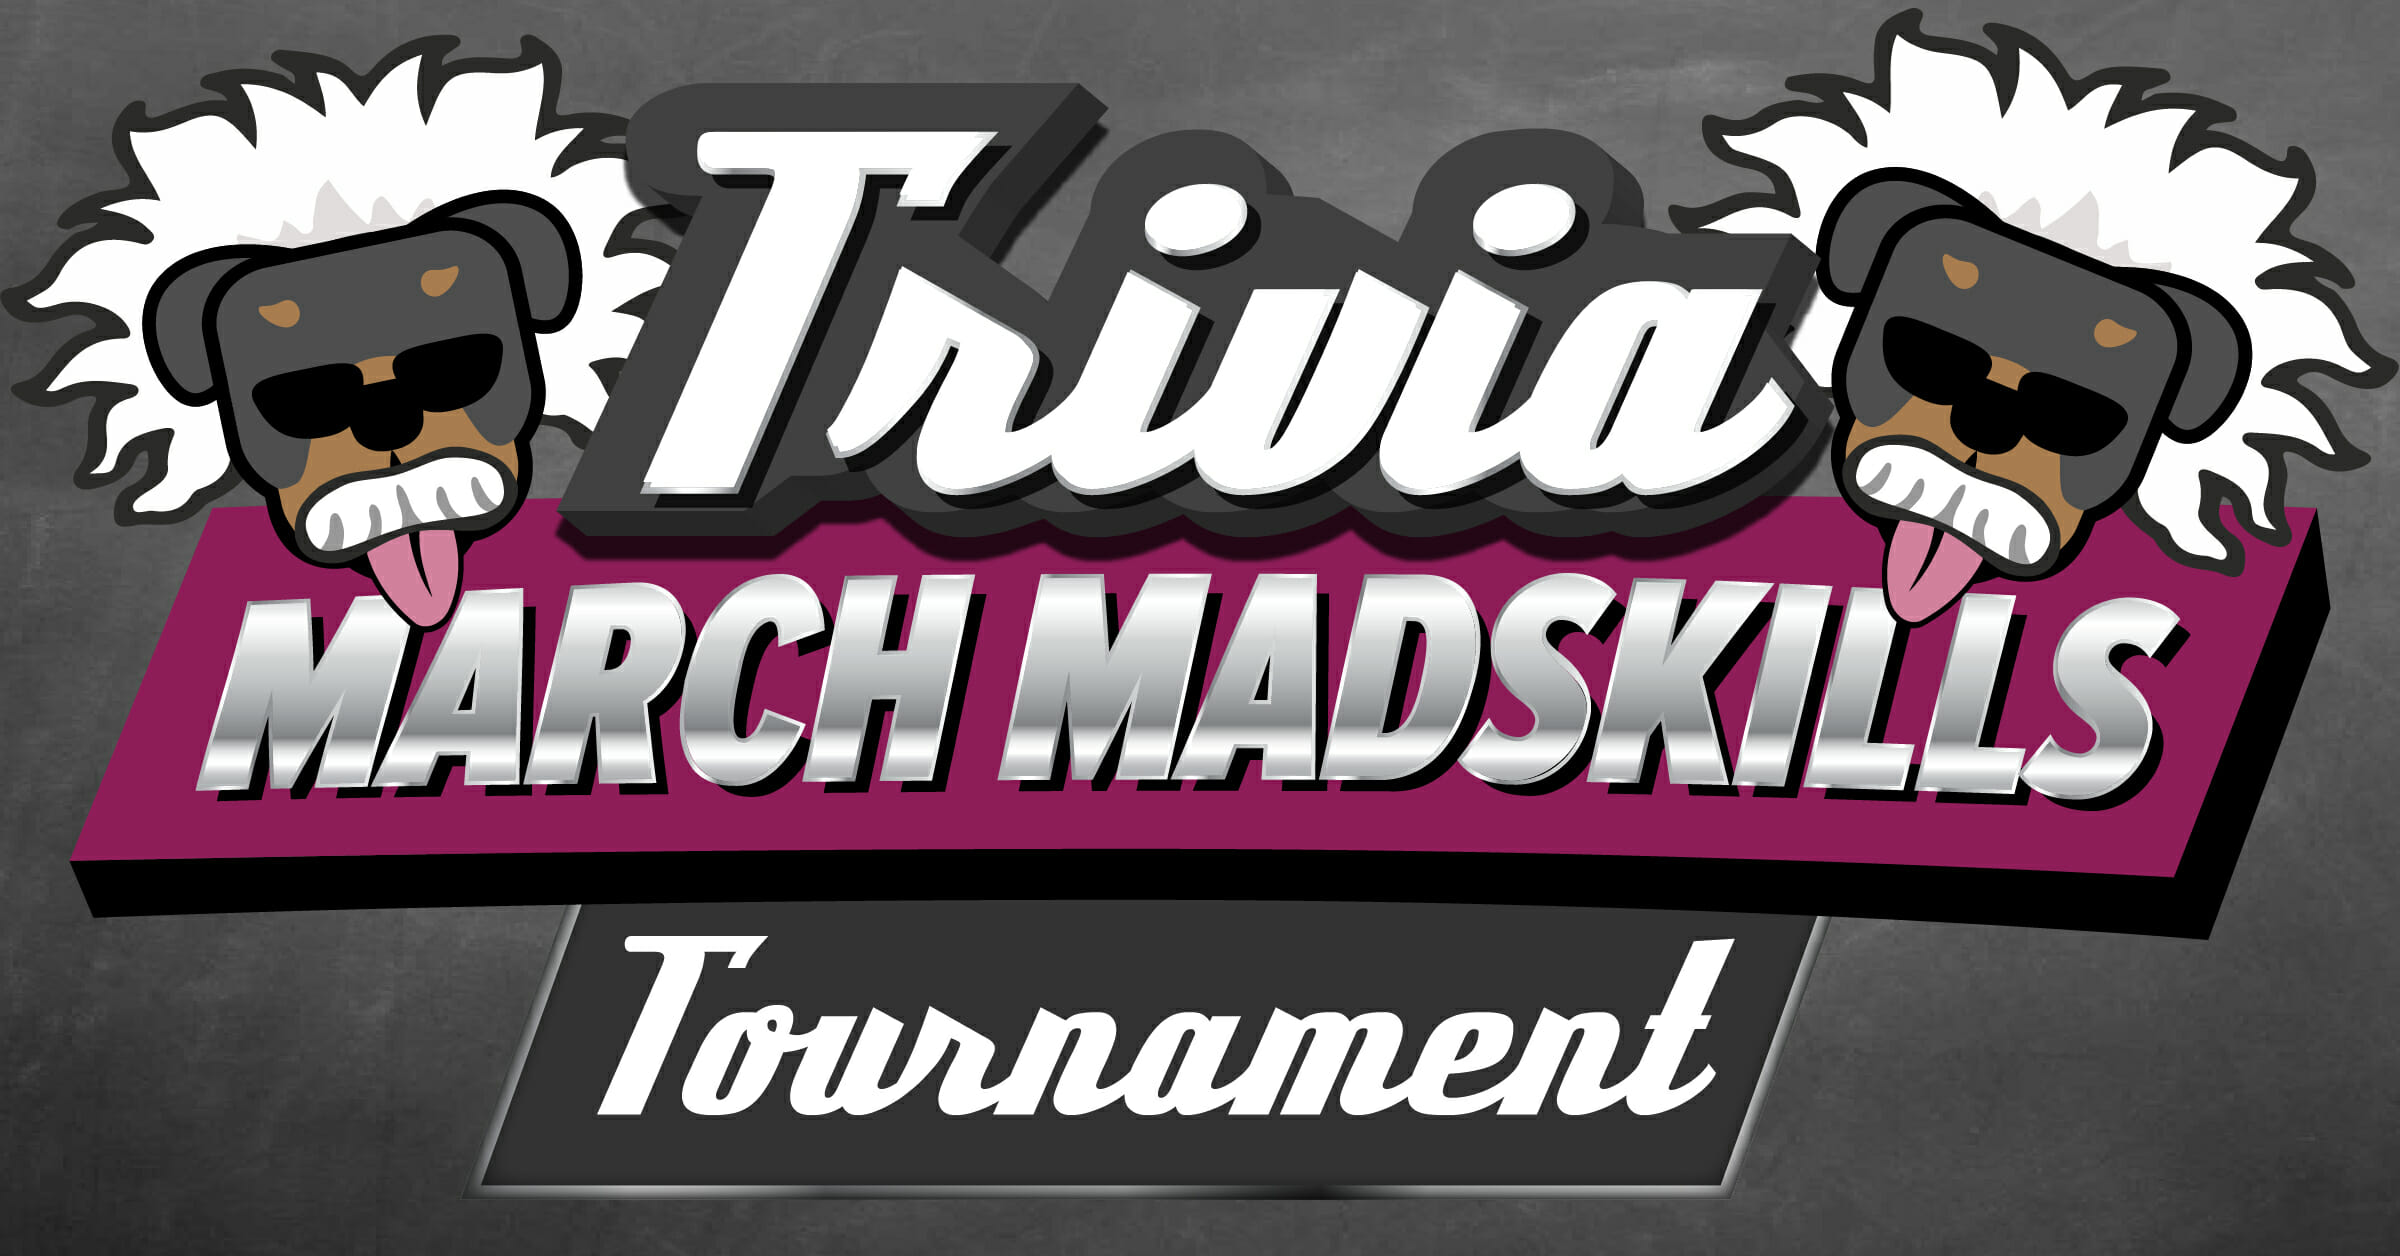 March Madskills Trivia Tournament